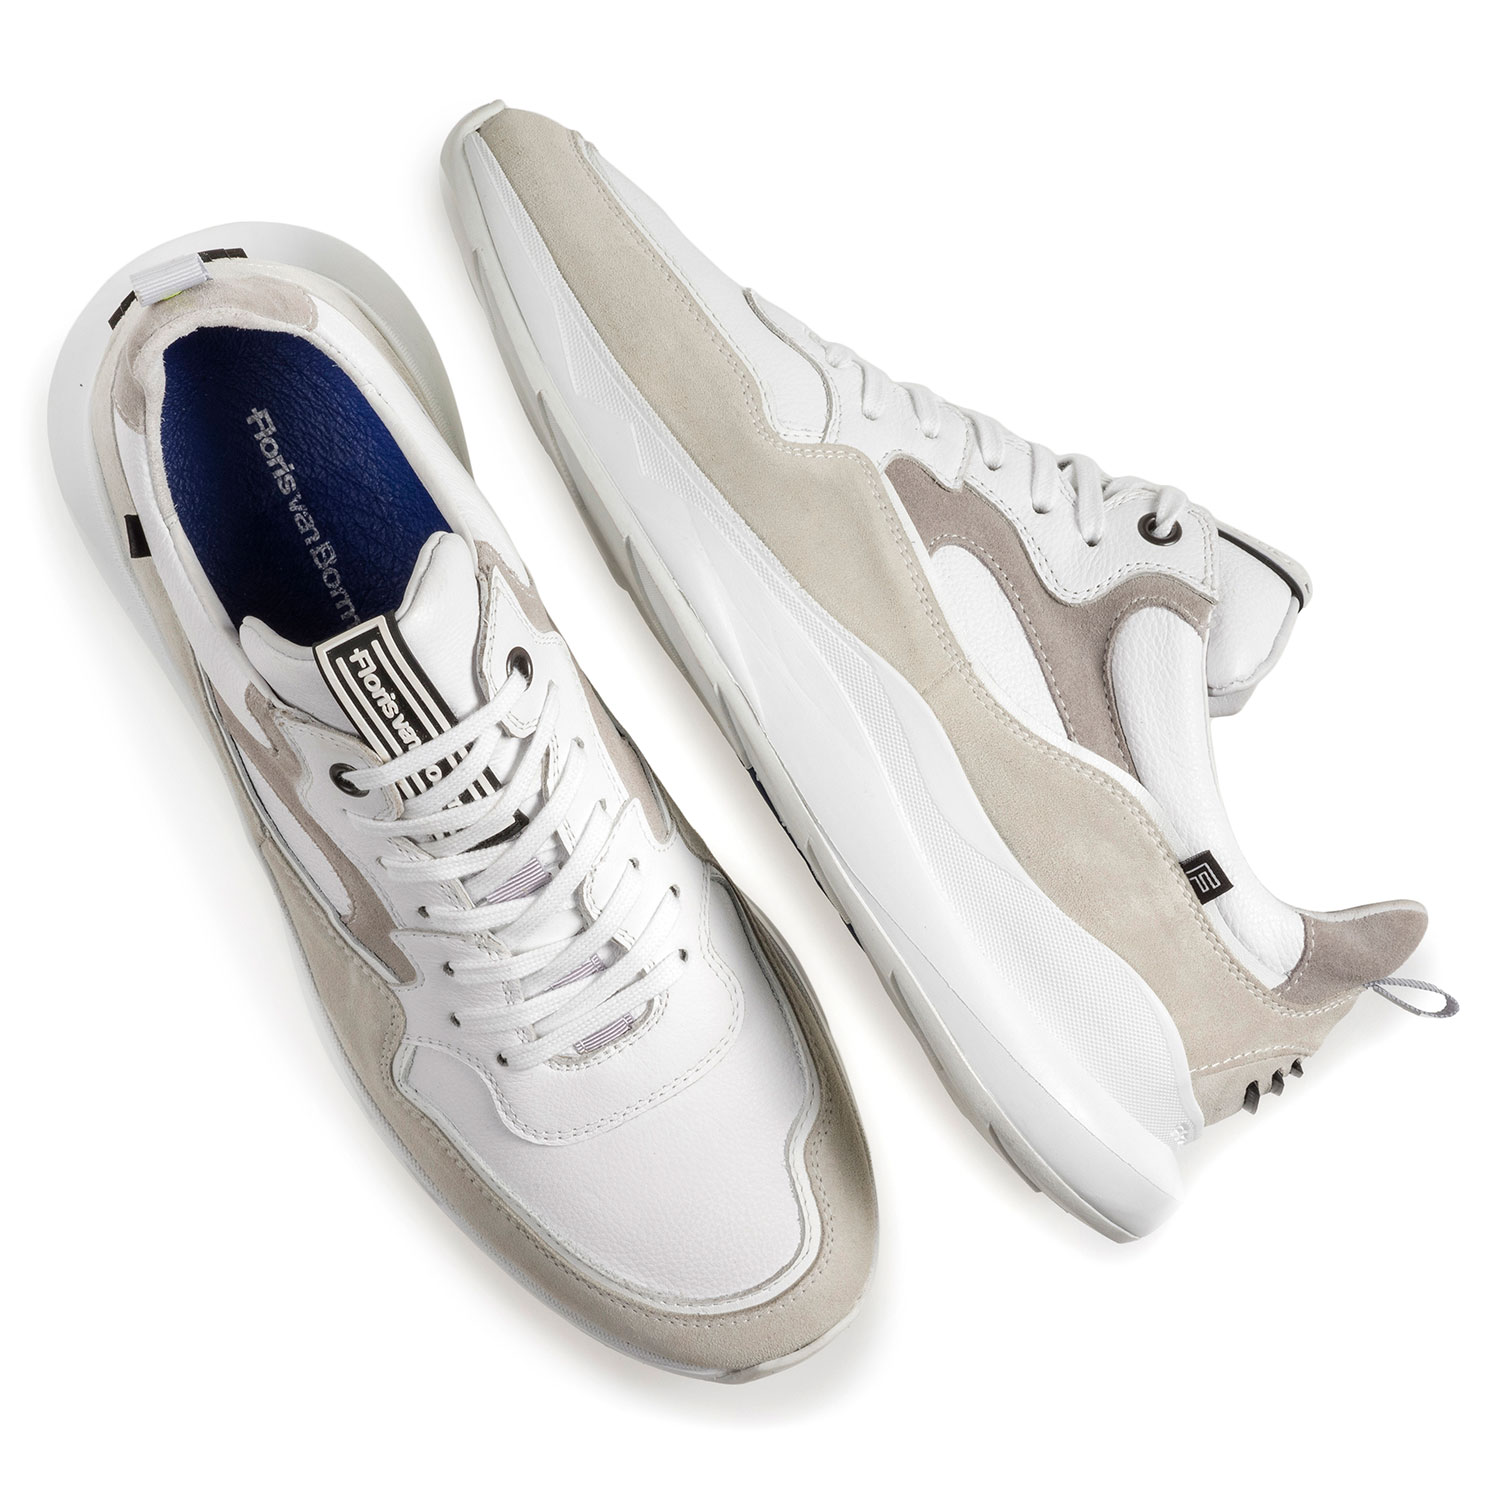 16269/21 - White sneaker with off-white suede leather